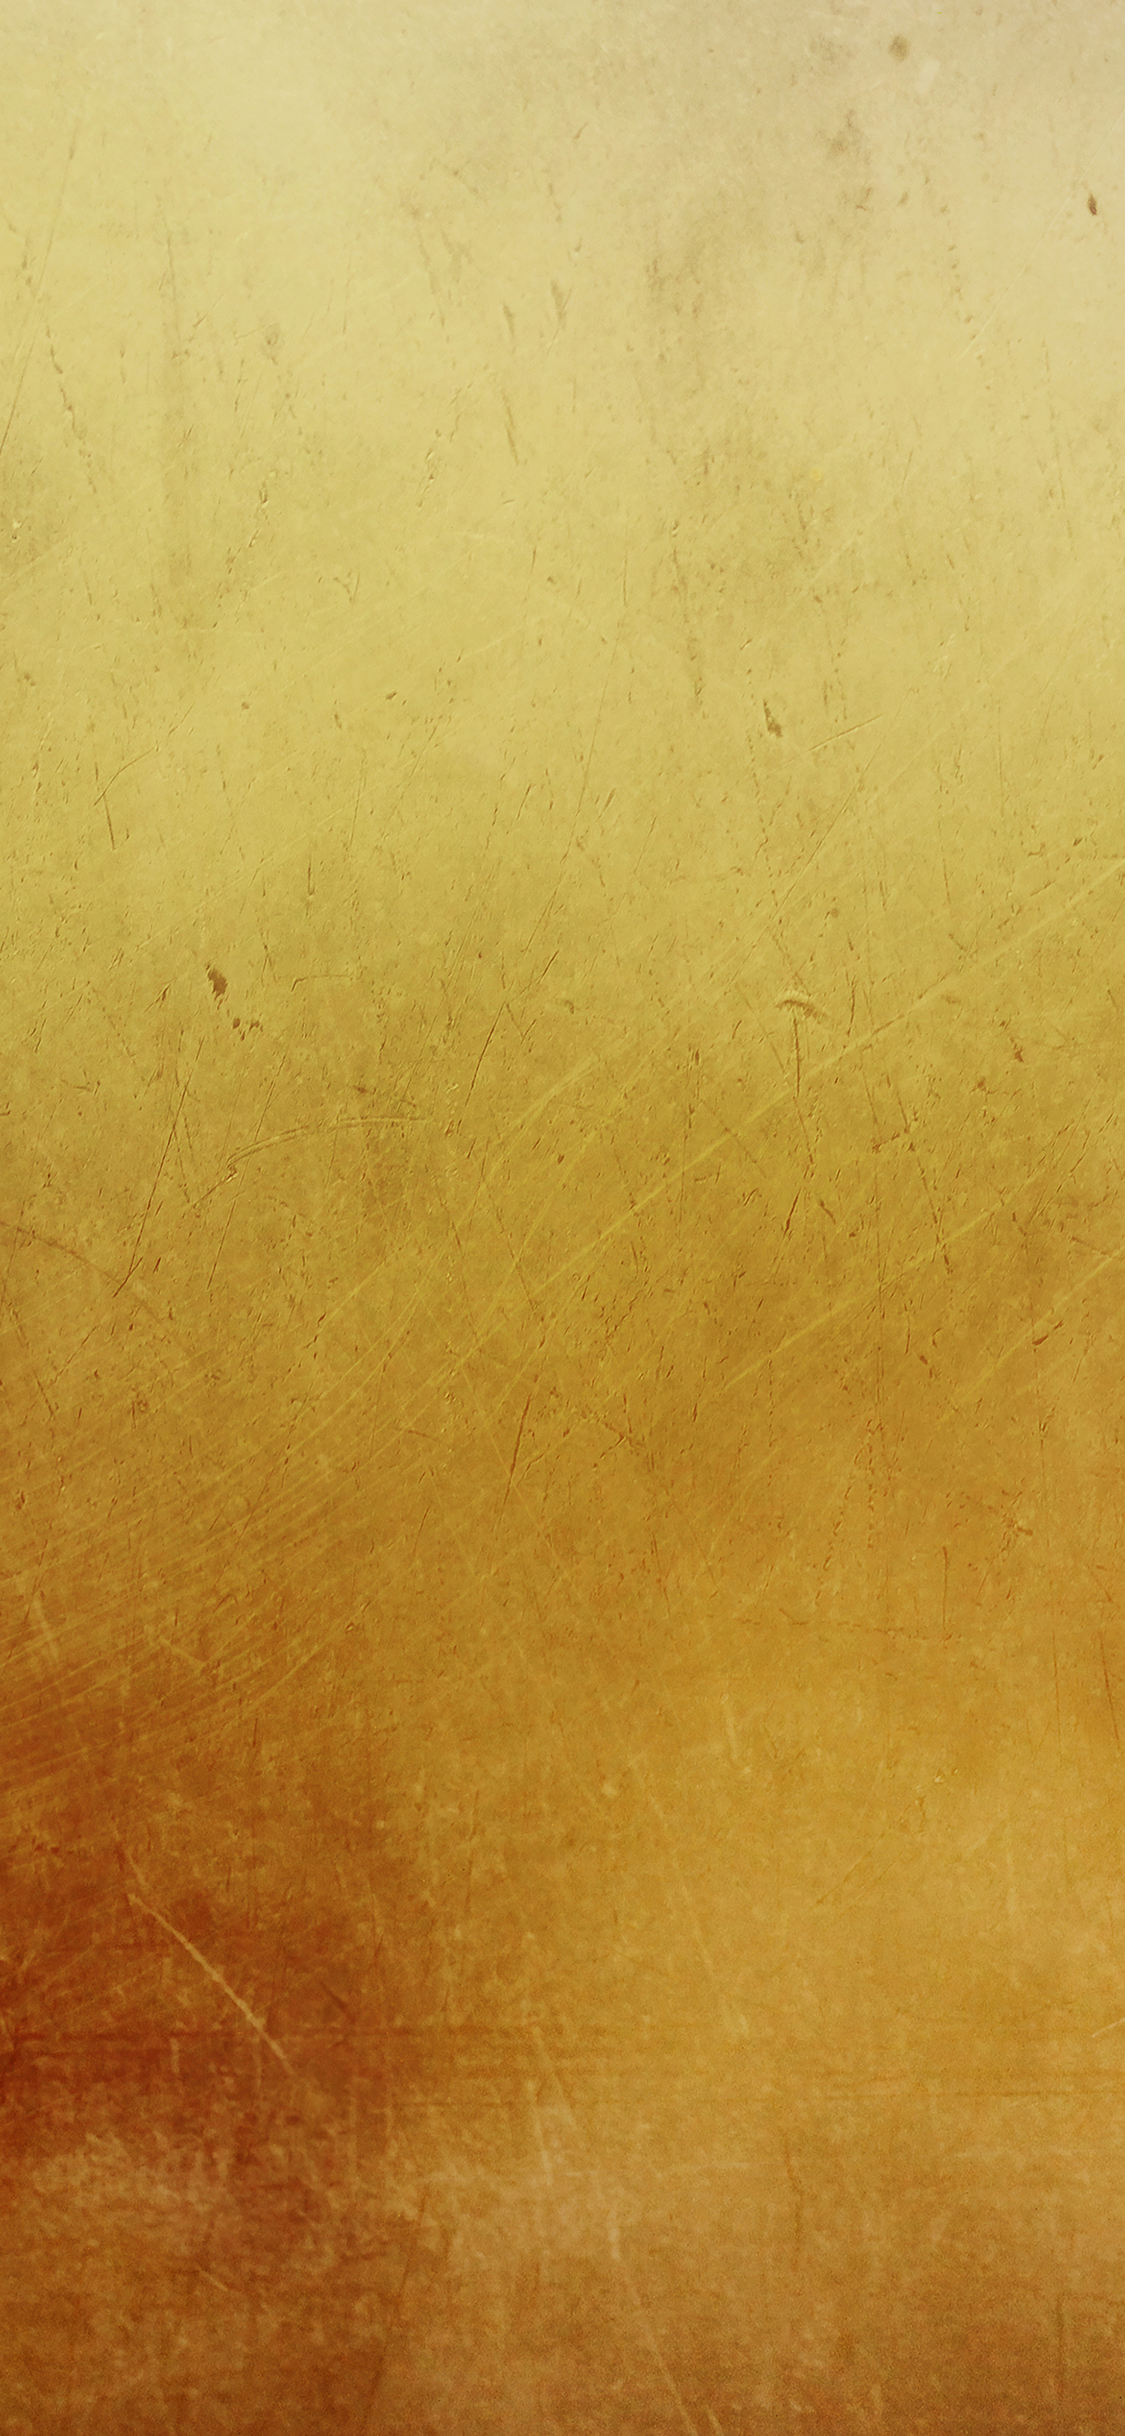 iPhoneXpapers.com-Apple-iPhone-wallpaper-vf03-golden-sandstone-texture-pattern